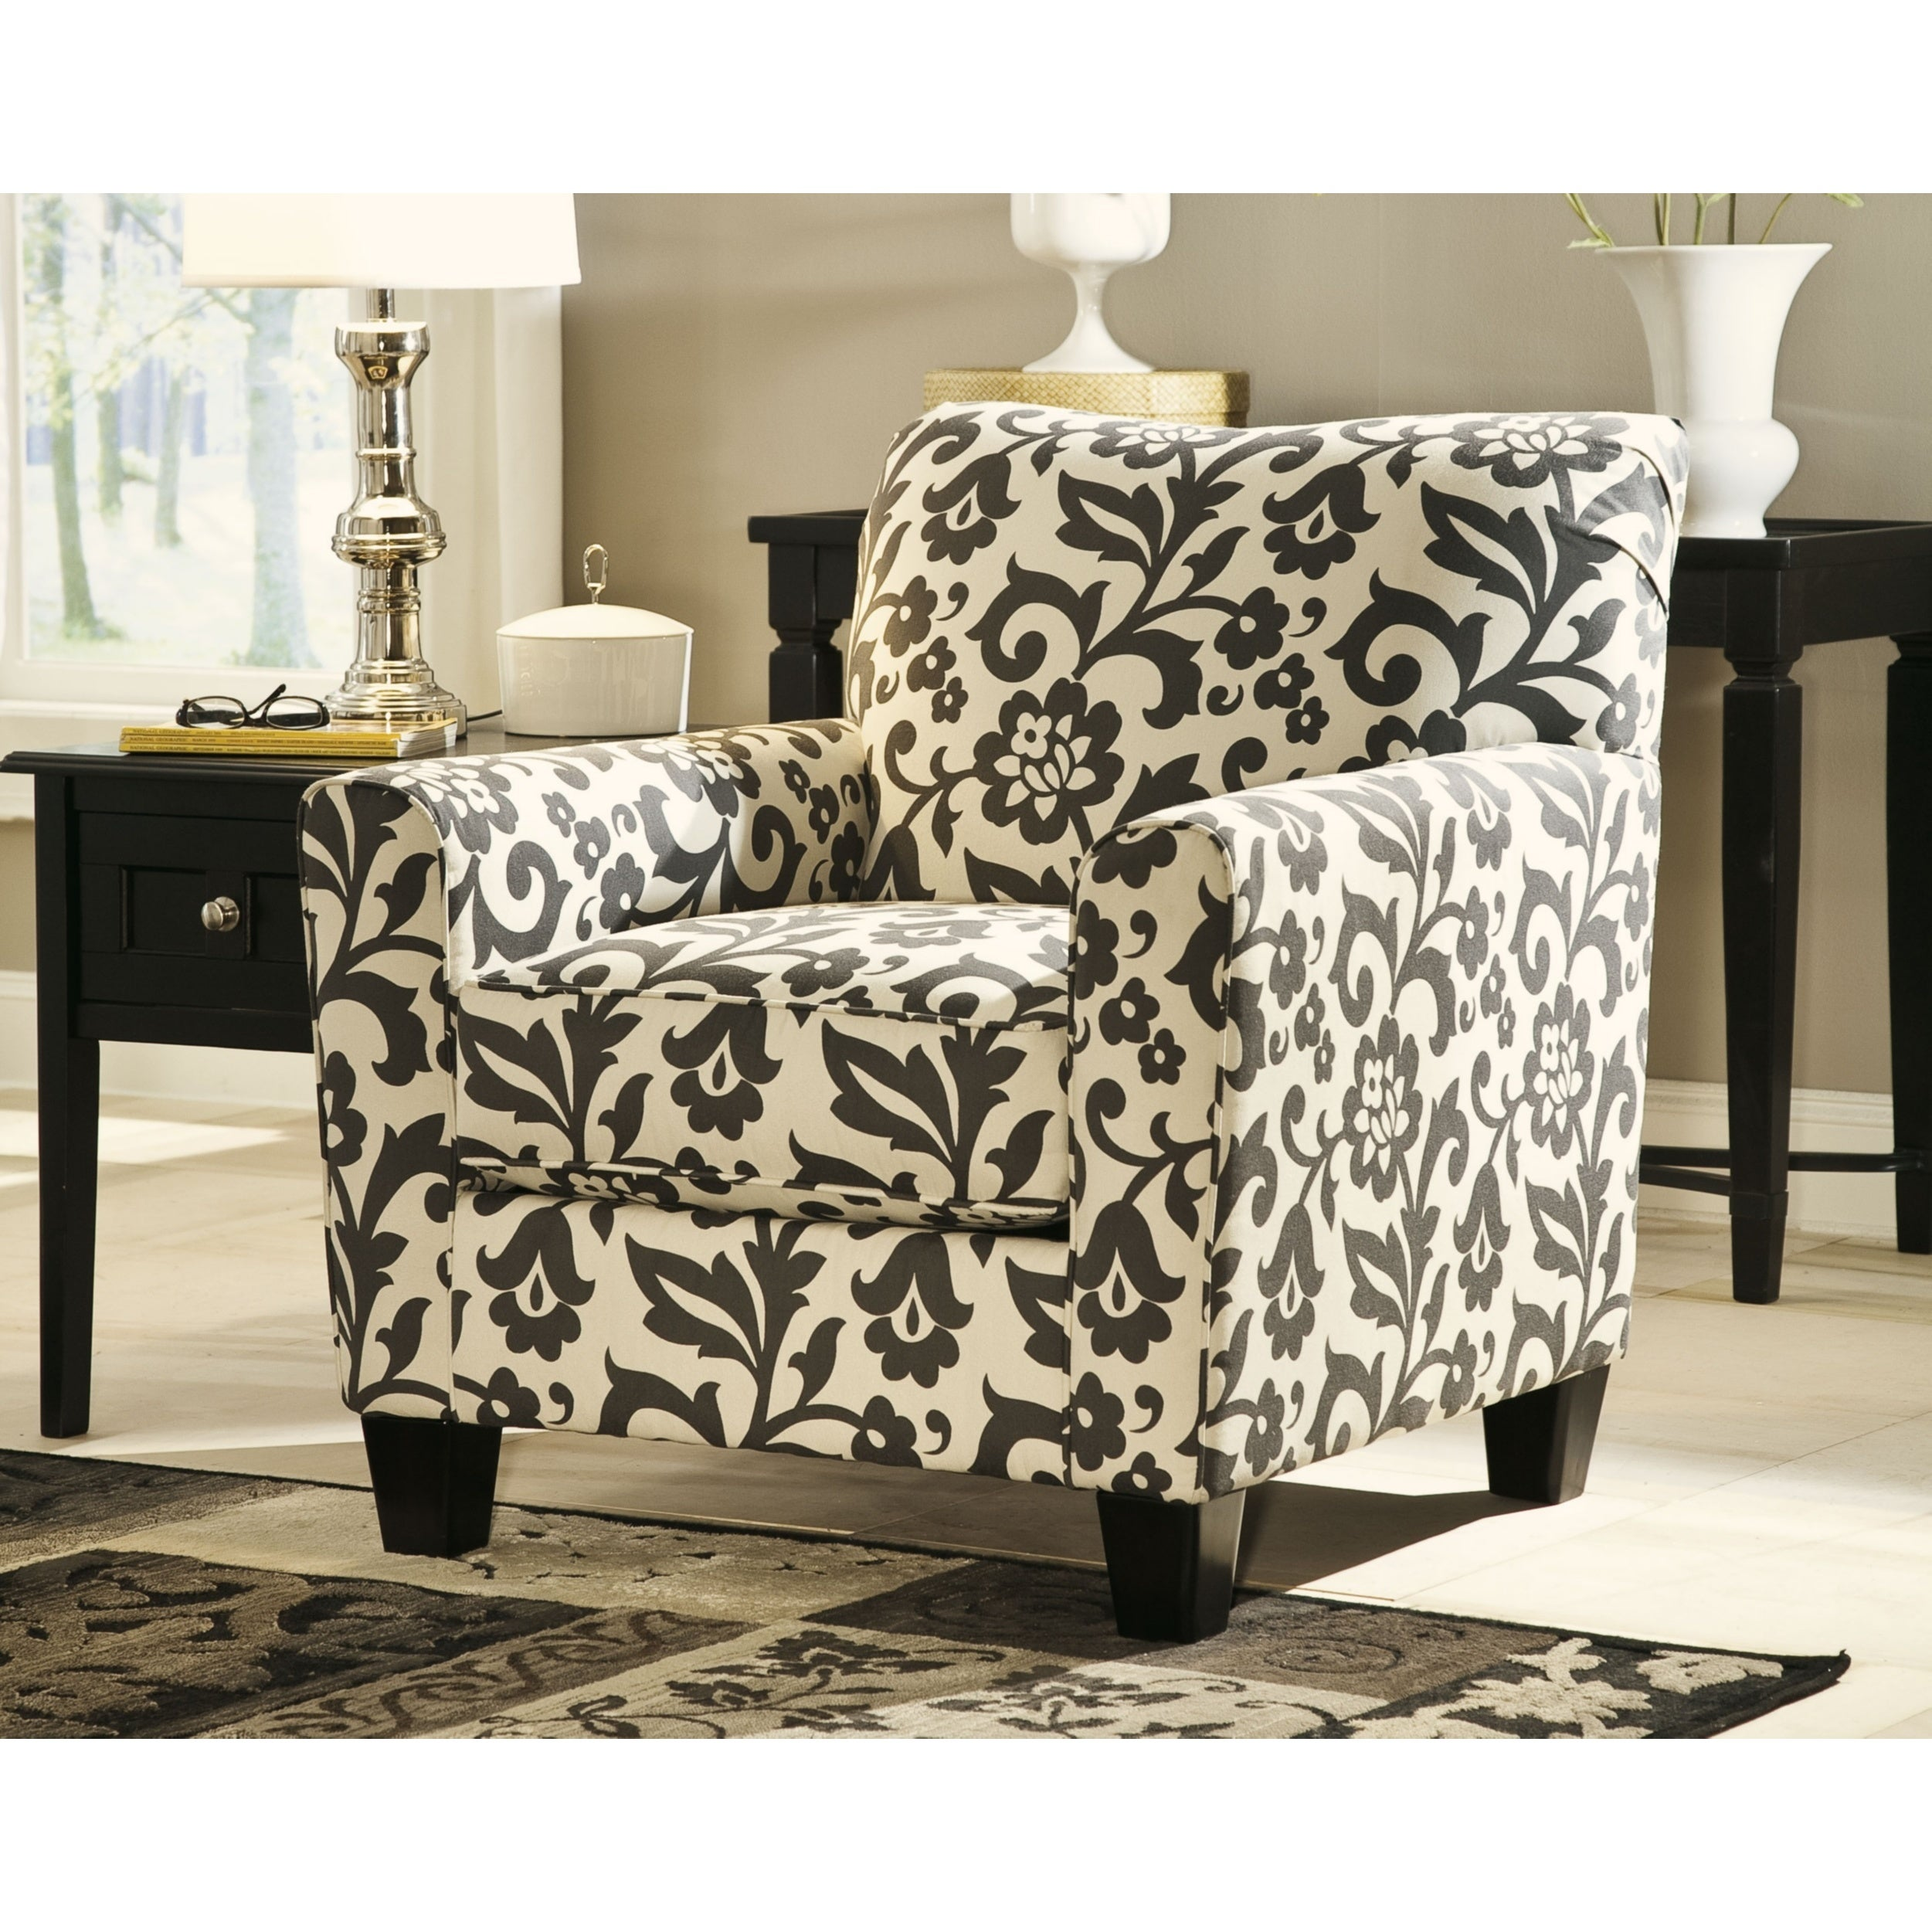 Pleasant Levon Charcoal Floral Print Accent Chair Download Free Architecture Designs Scobabritishbridgeorg